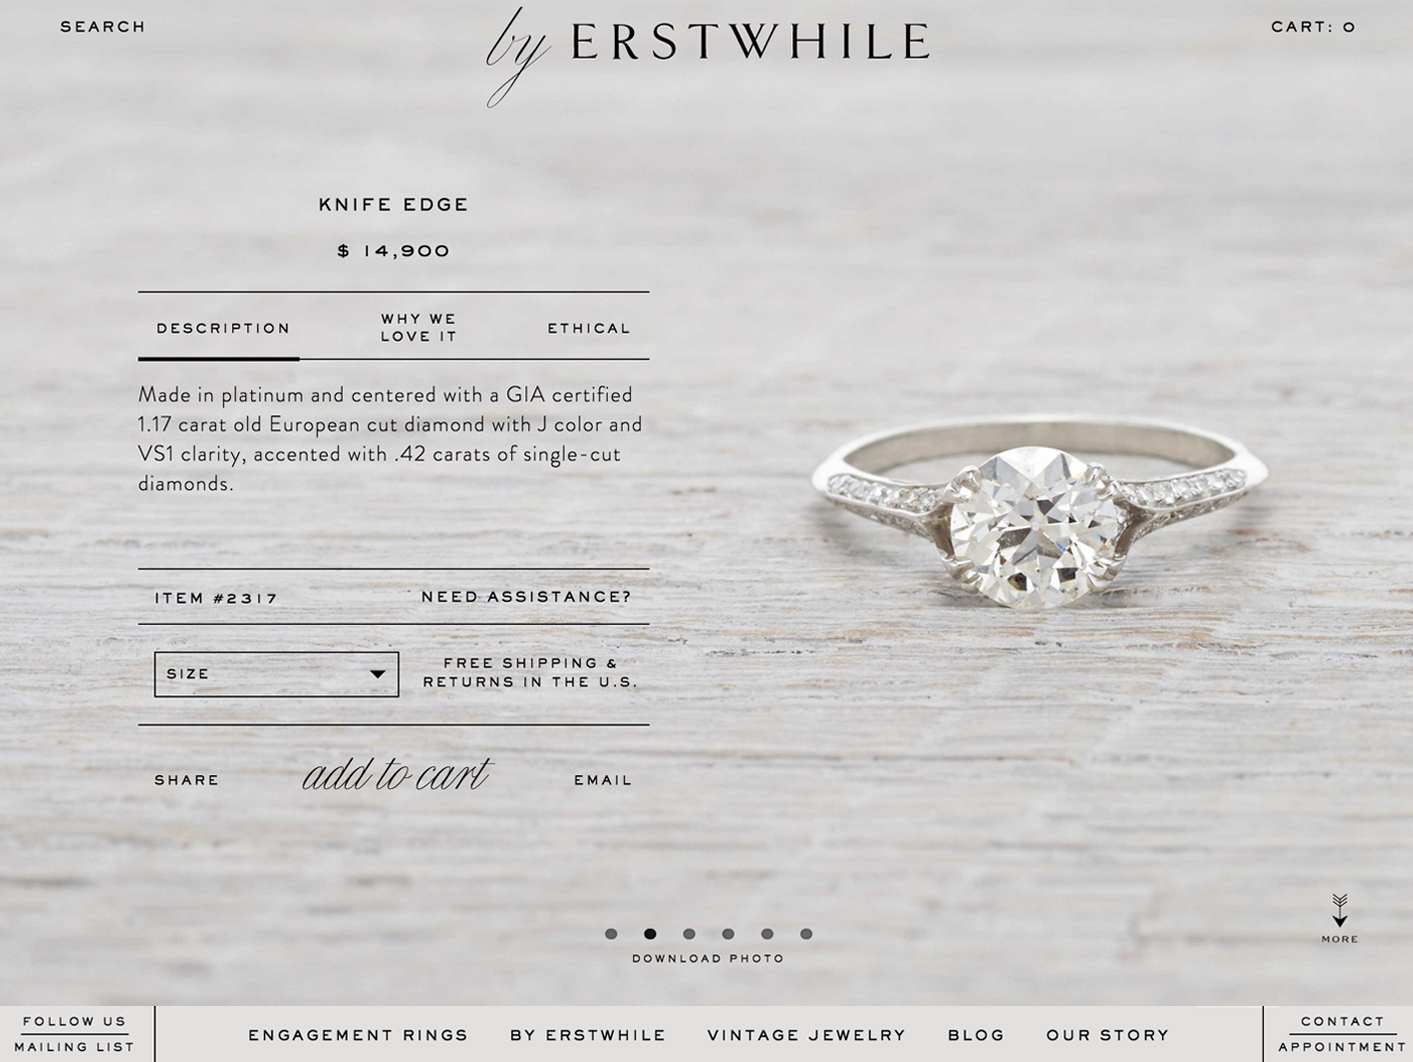 Erstwhile website designed by Scissor.